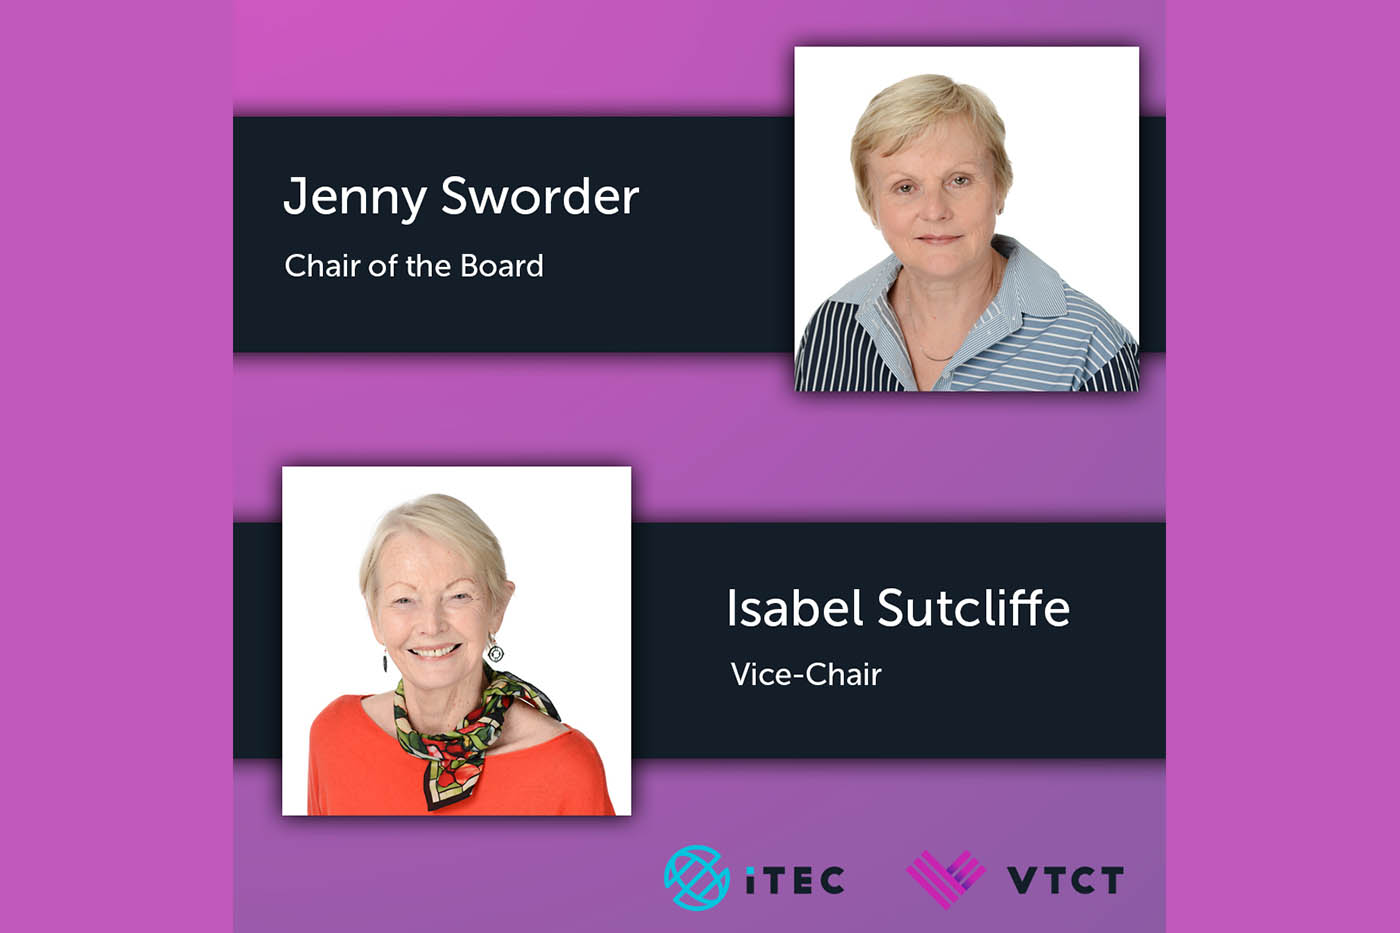 VTCT appoints new Chair and Vice-Chair